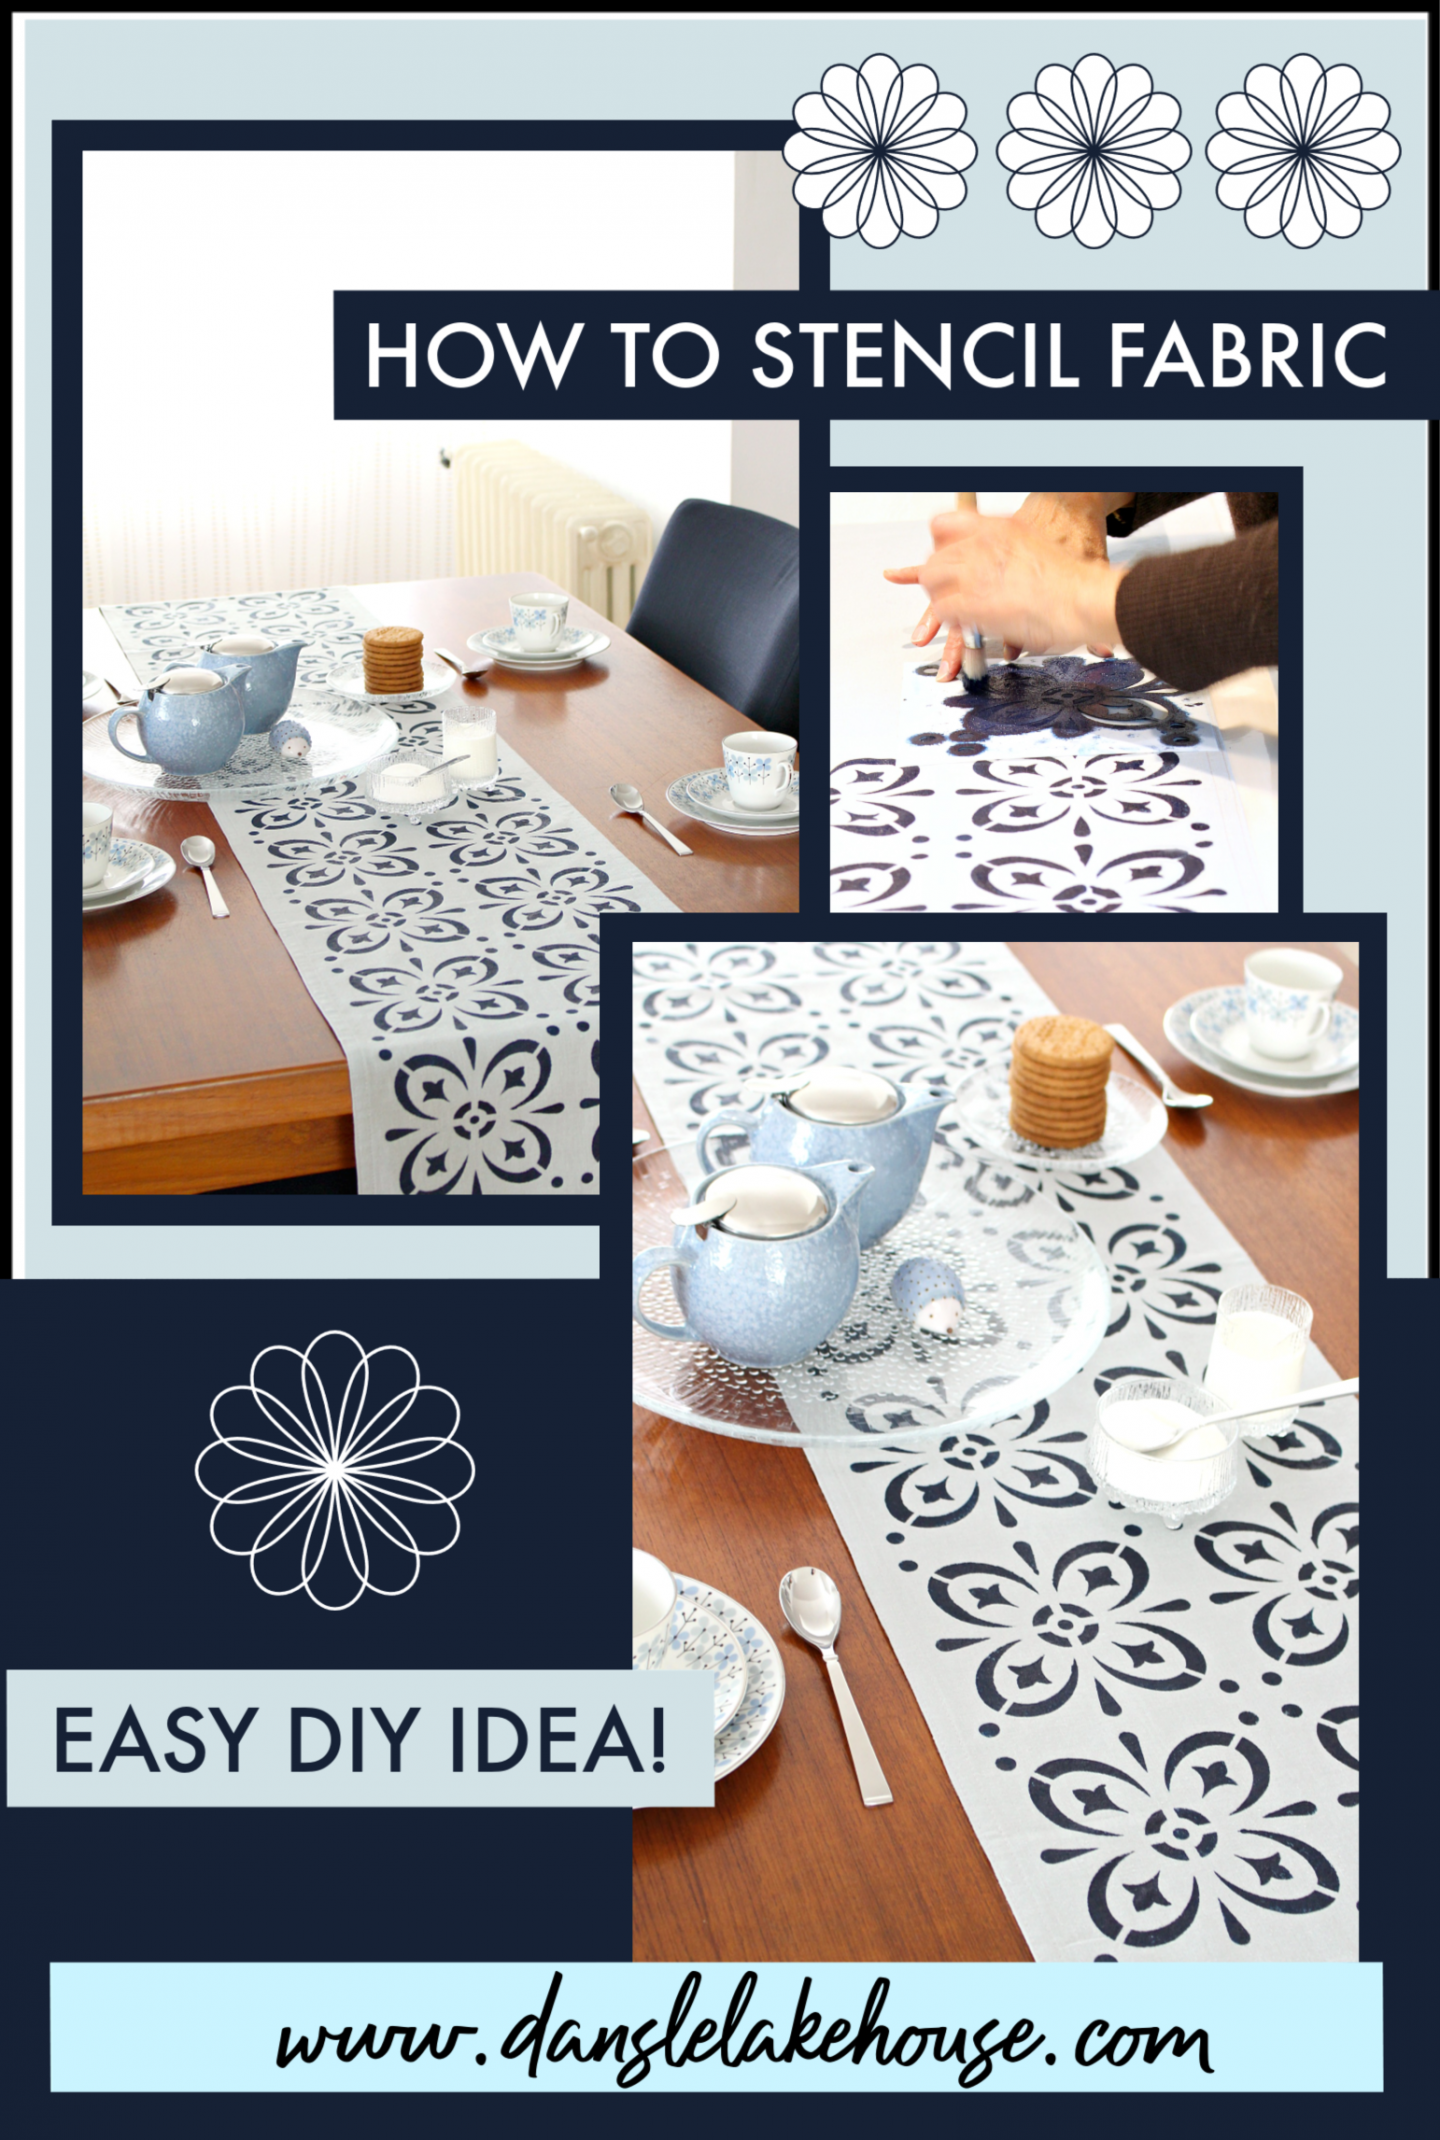 How to stencil fabric easy DIY